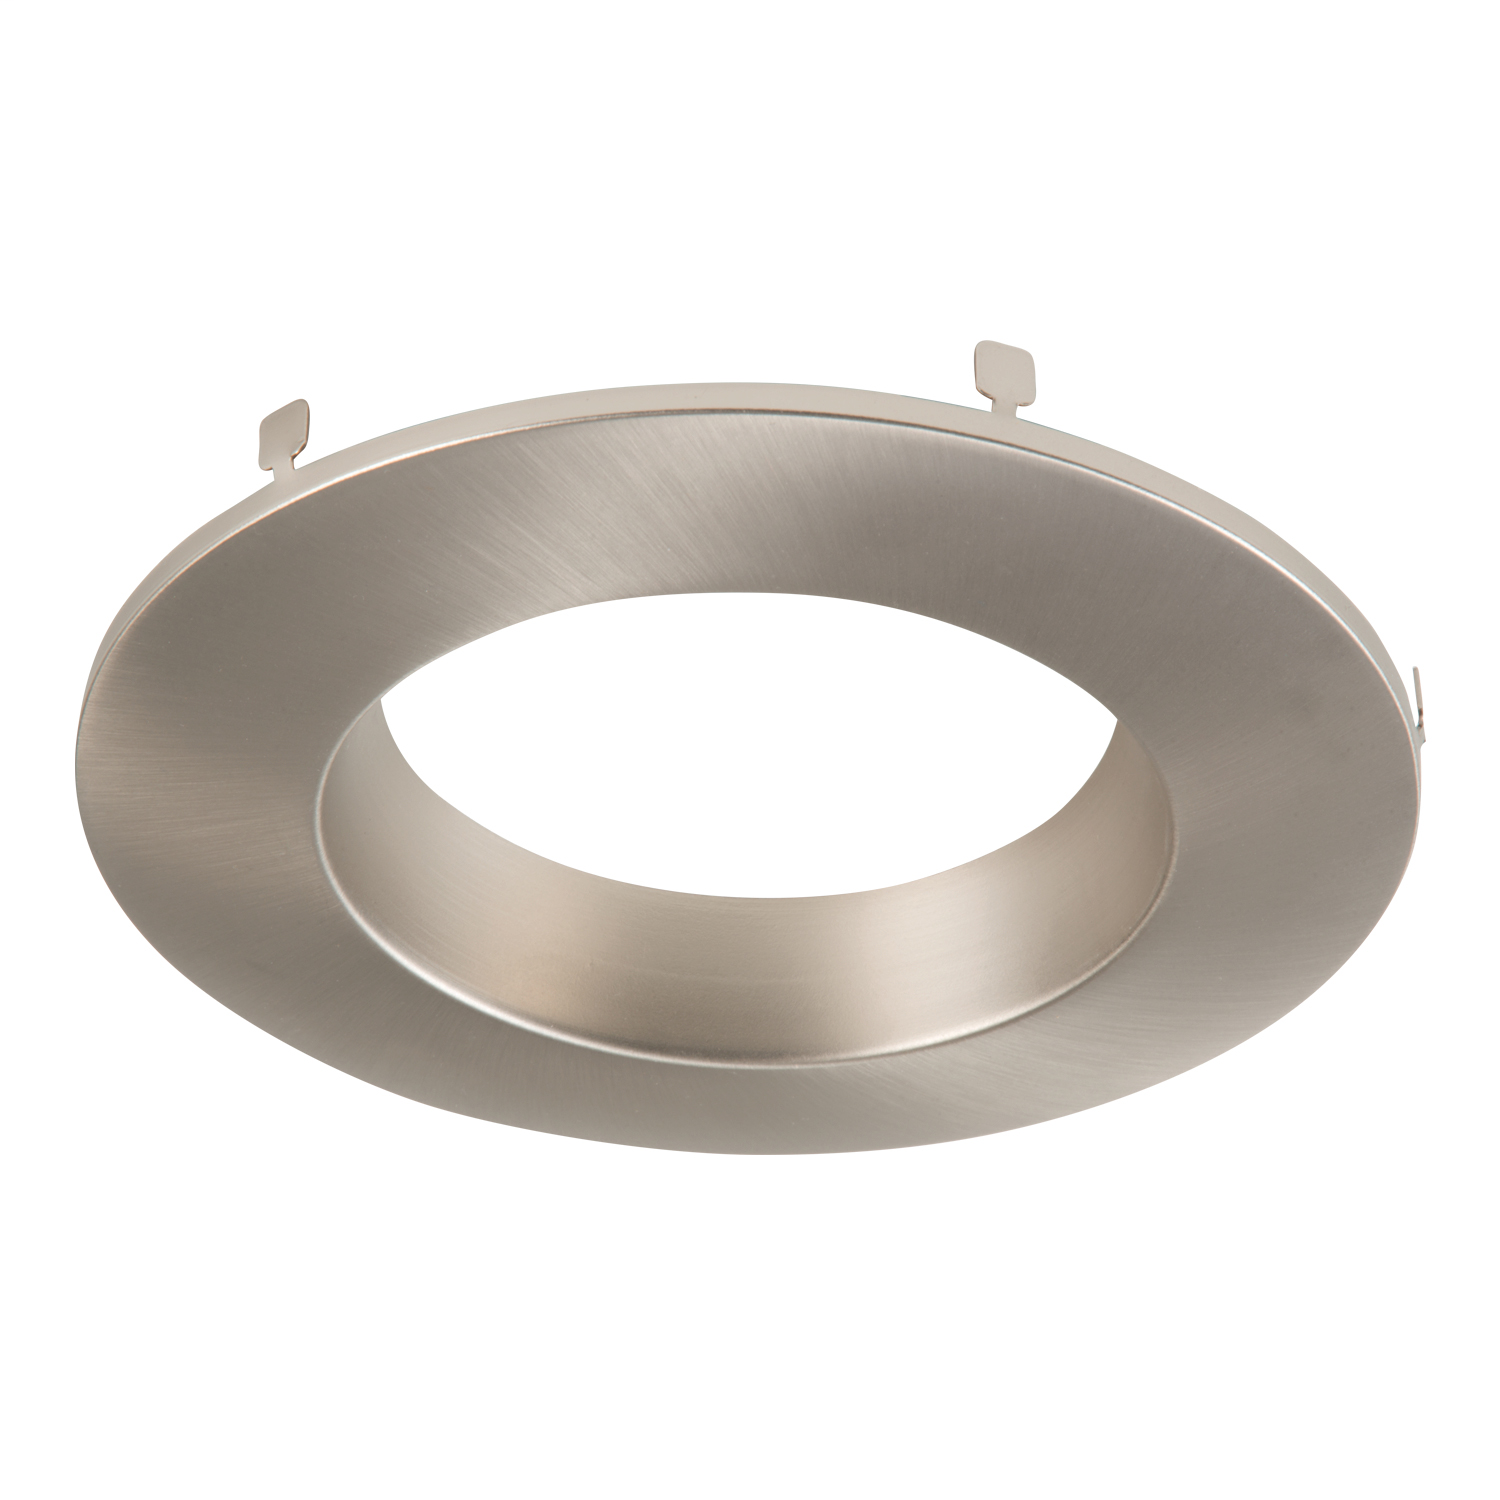 HALO RL56TRMSN SATIN NICKEL TRIM